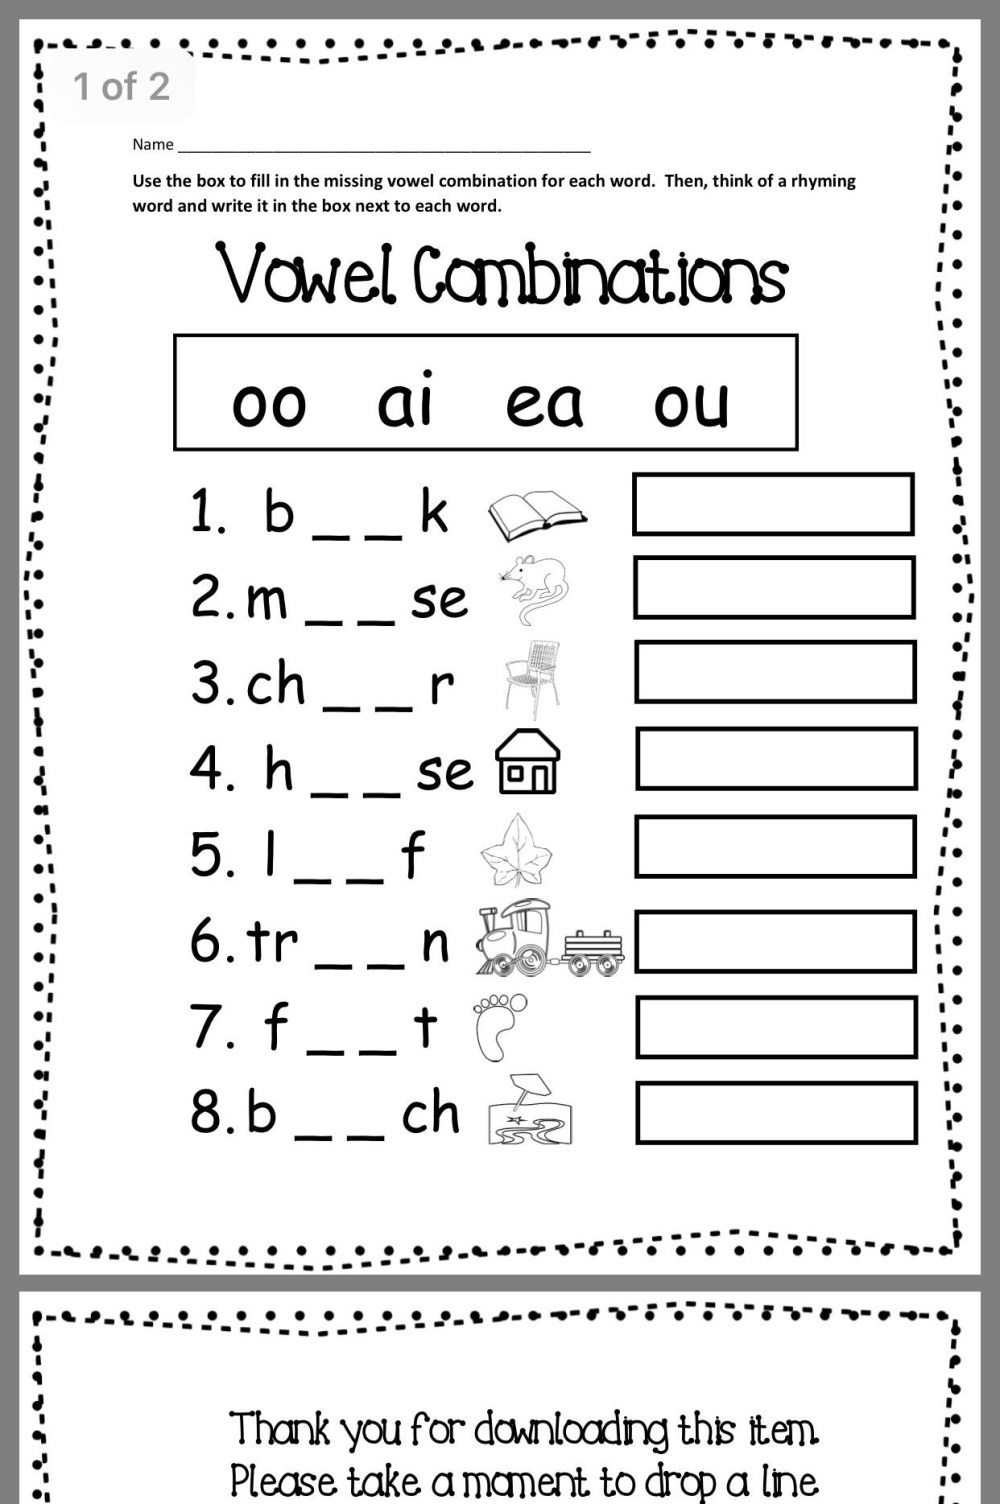 medium resolution of Adult Phonics Worksheets   Printable Worksheets and Activities for  Teachers